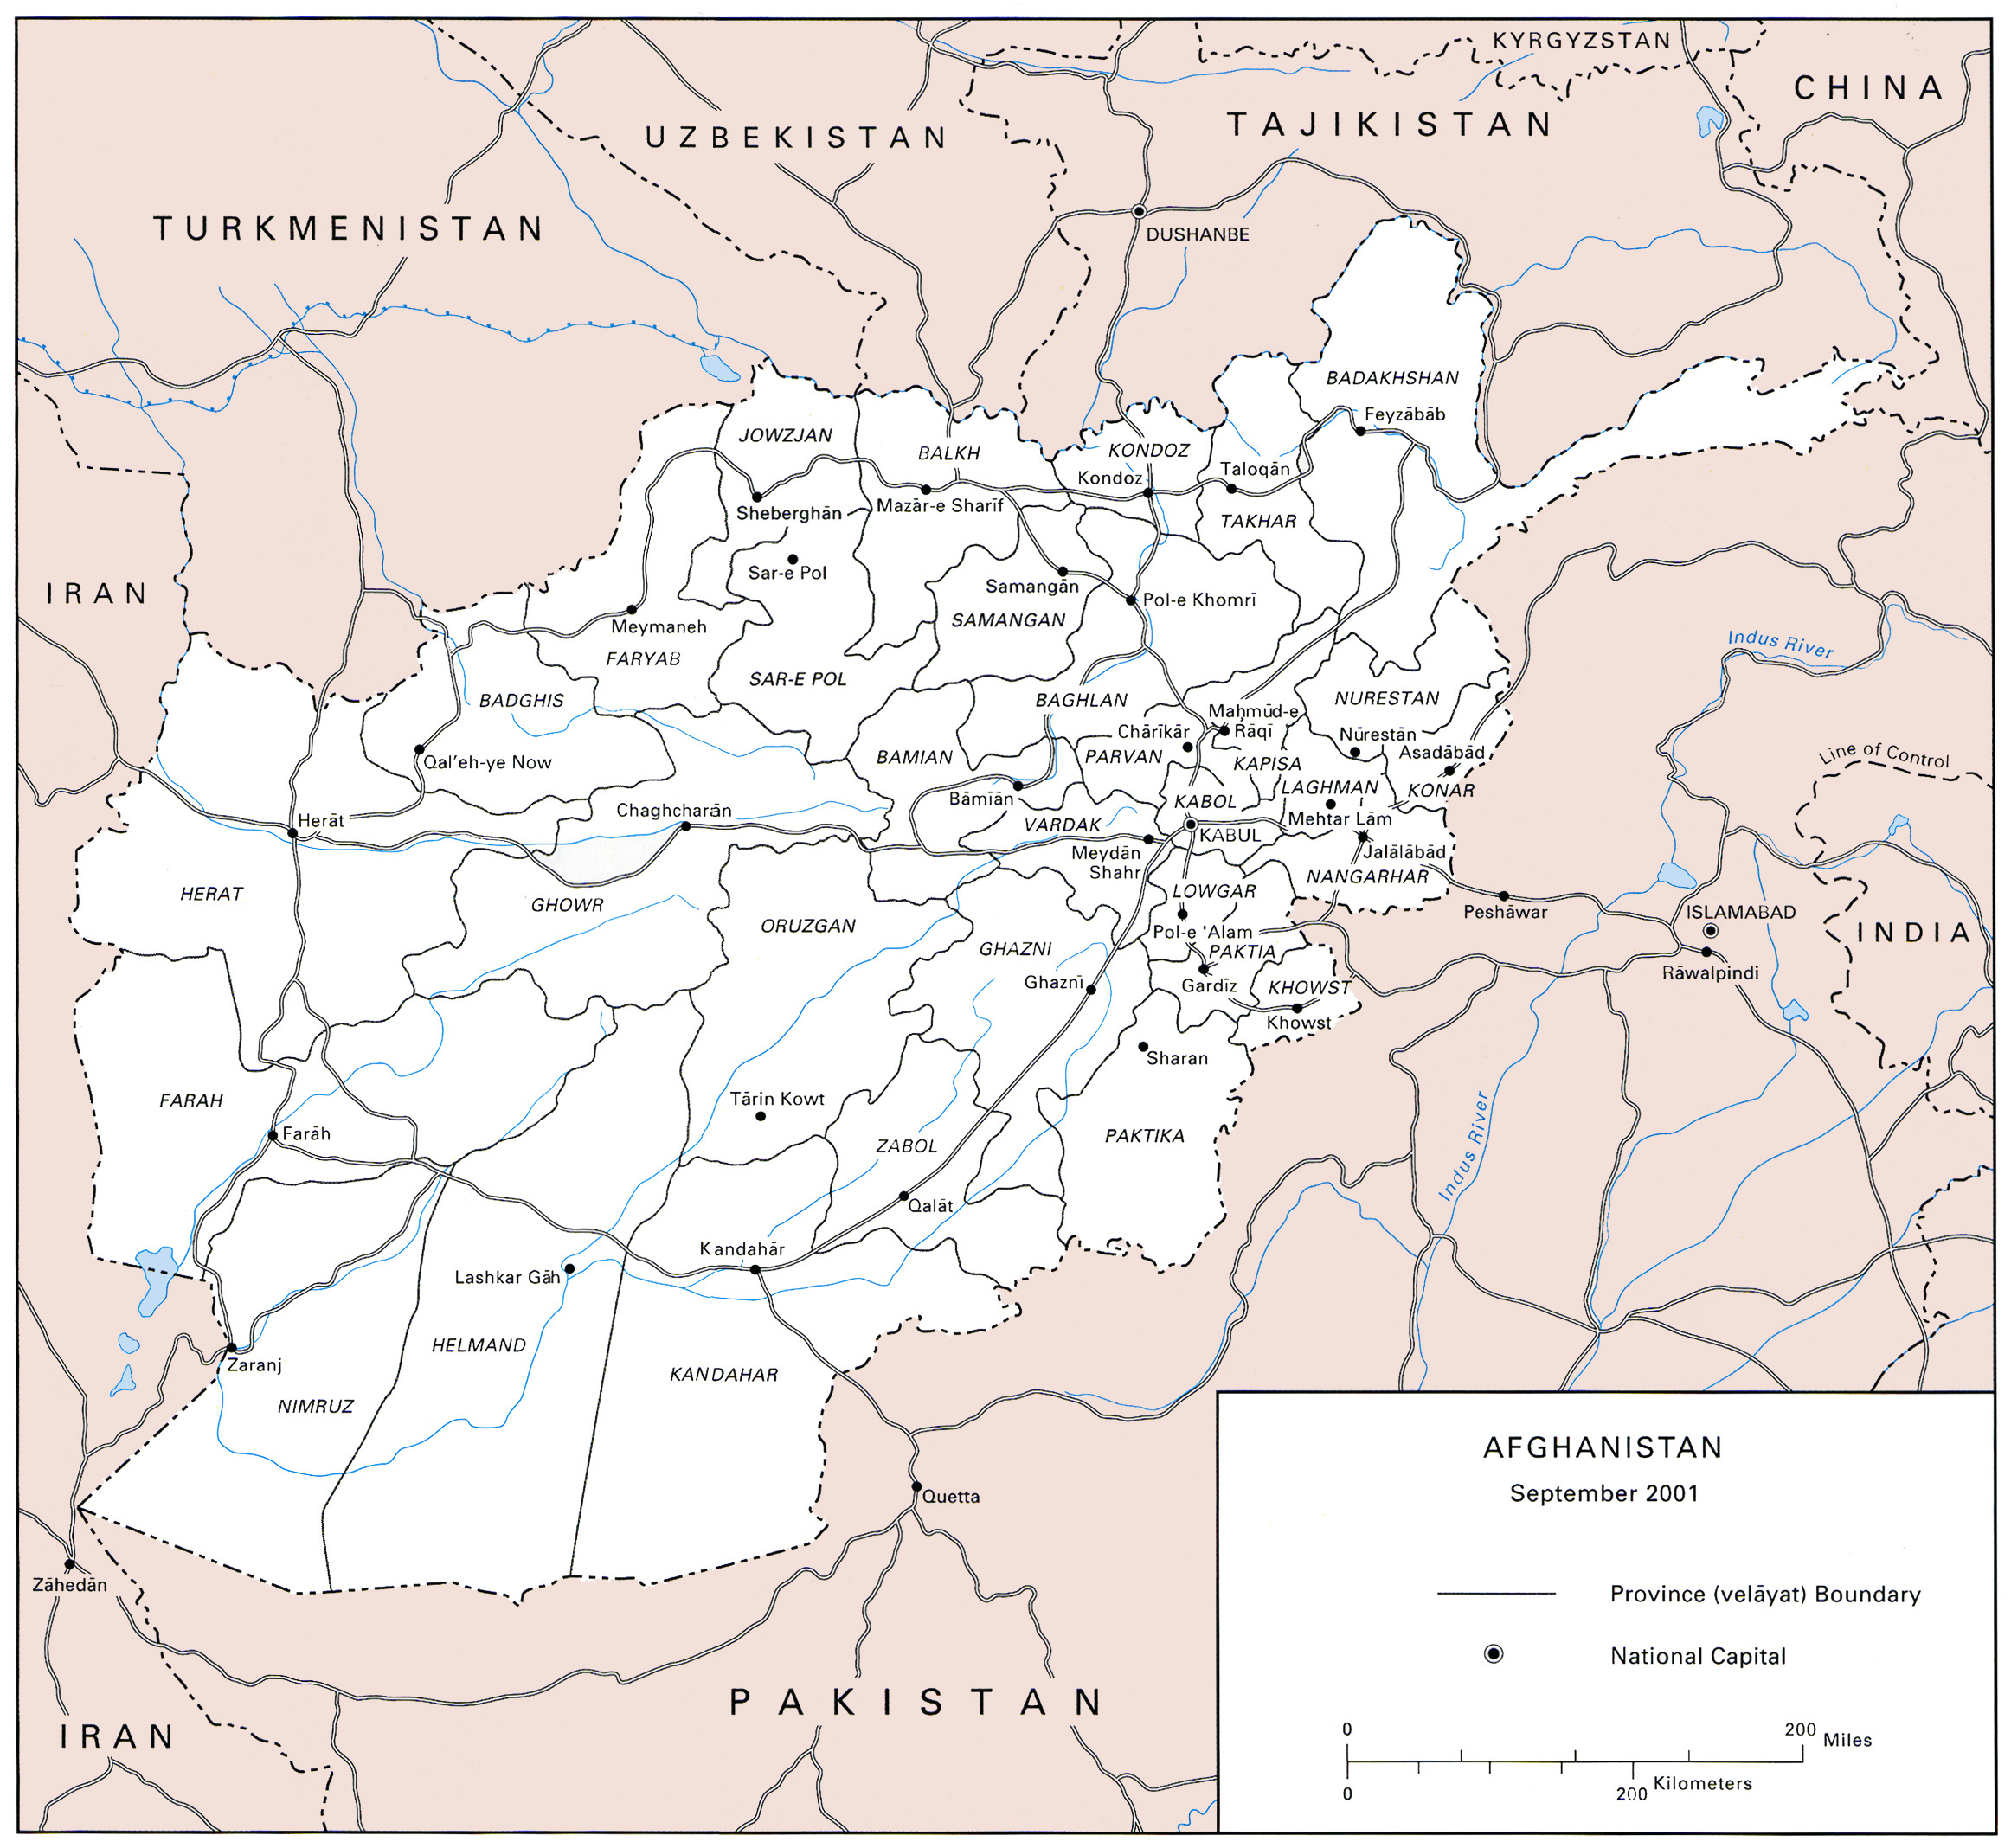 detailed us army map of afghanistan 2001